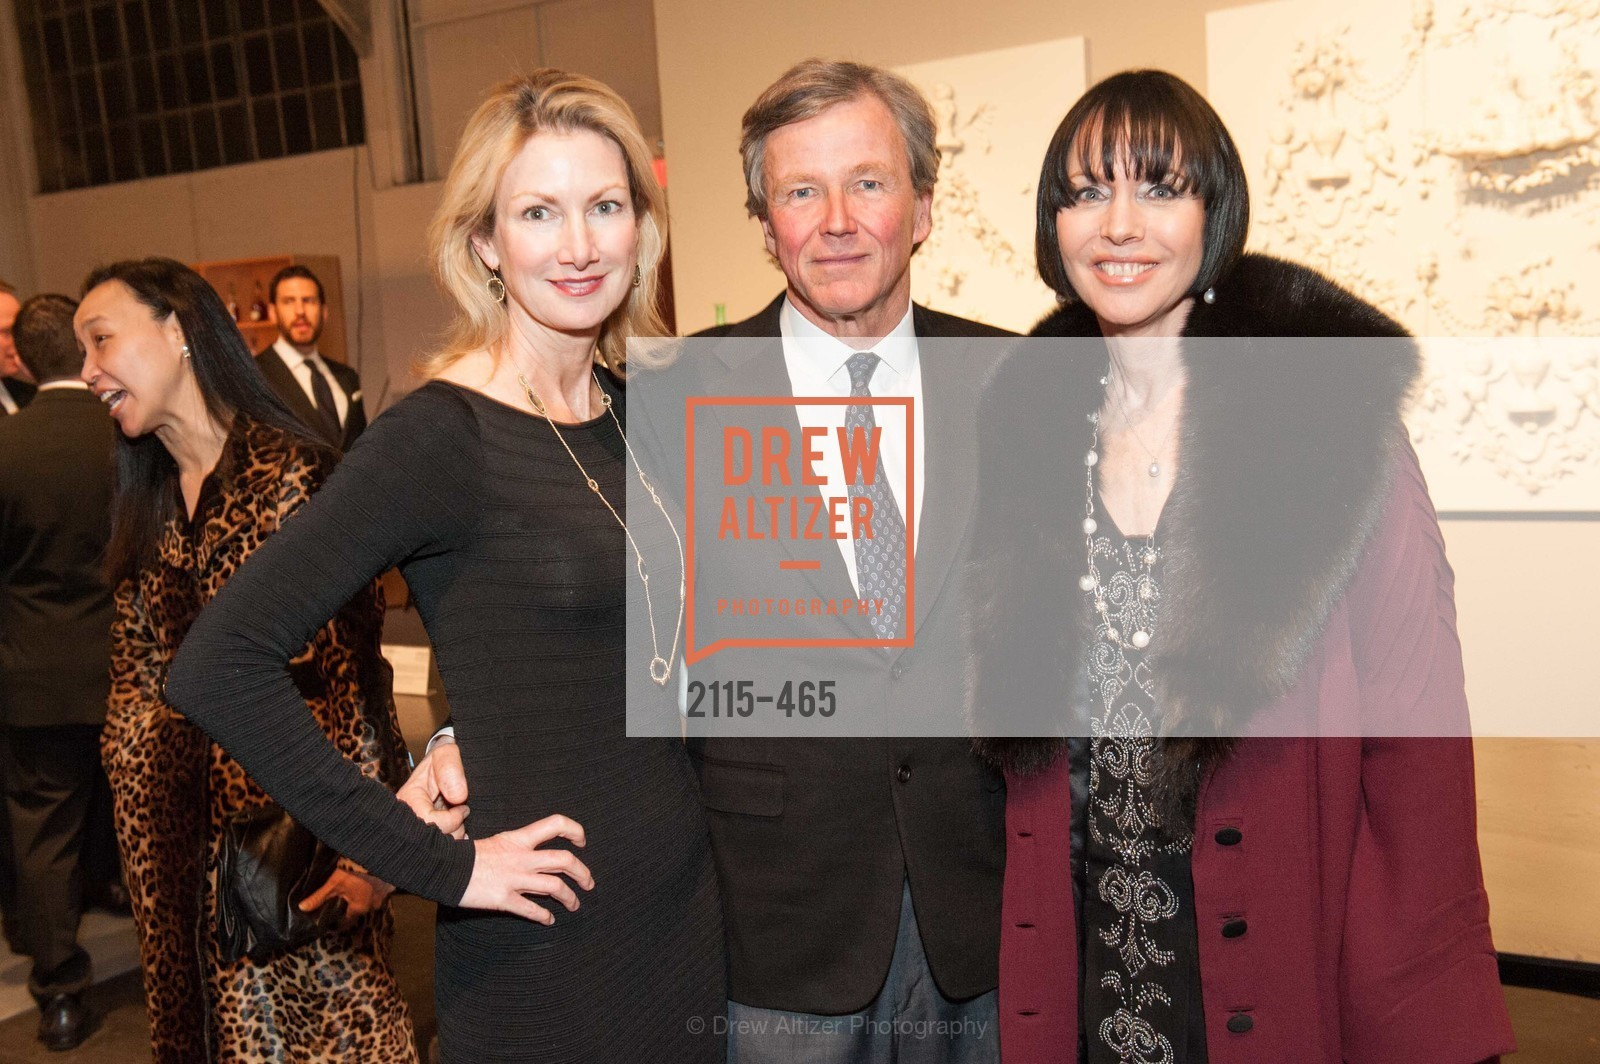 Shirley Parks, James Smith, Christine Suppes, FOG Design + Art Preview Gala, US. US, January 16th, 2014,Drew Altizer, Drew Altizer Photography, full-service event agency, private events, San Francisco photographer, photographer California